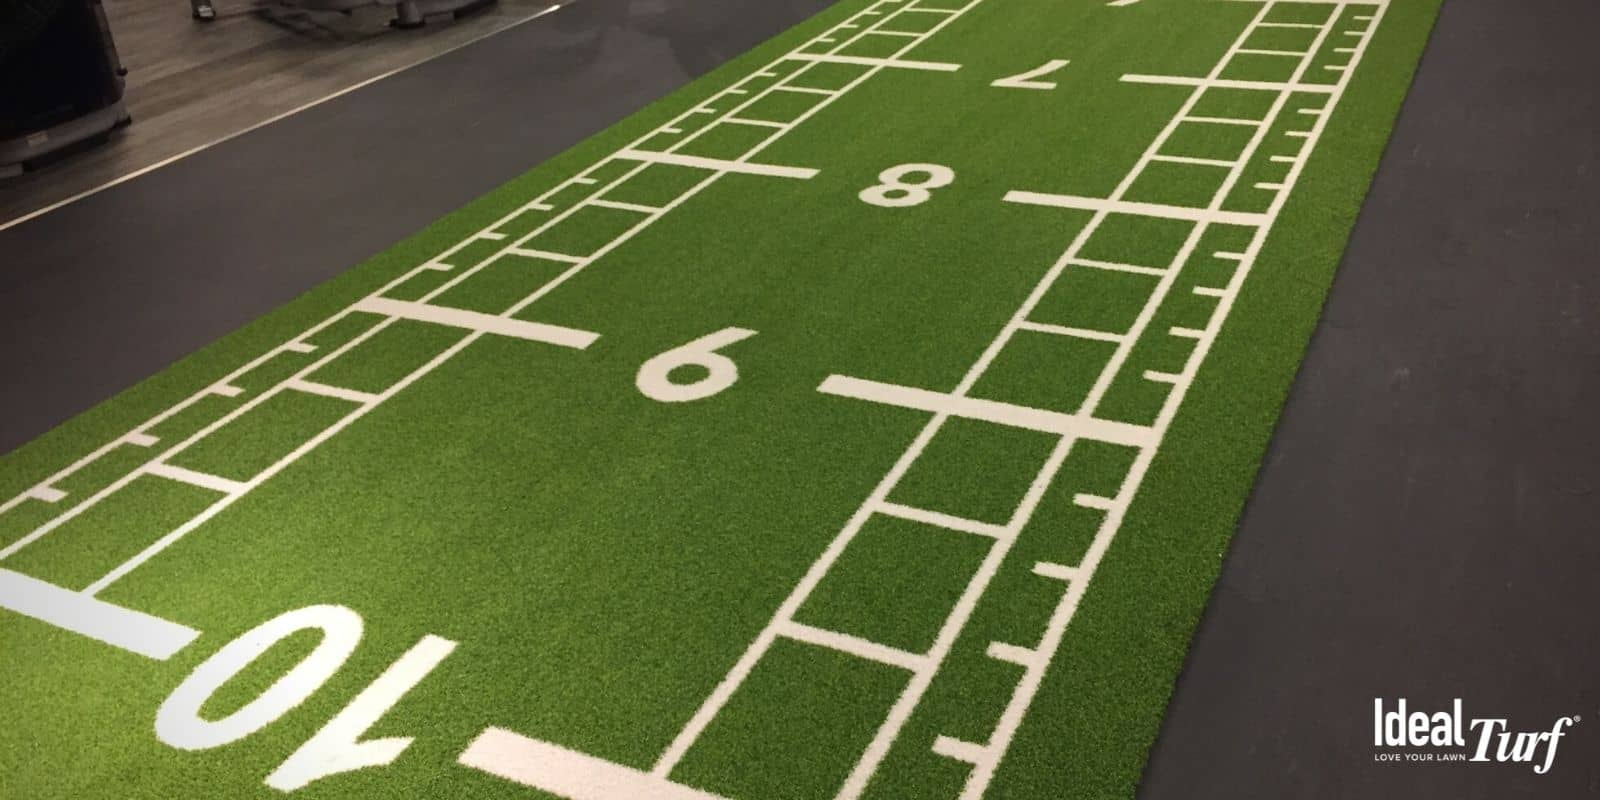 Artificial grass in an athletic facility